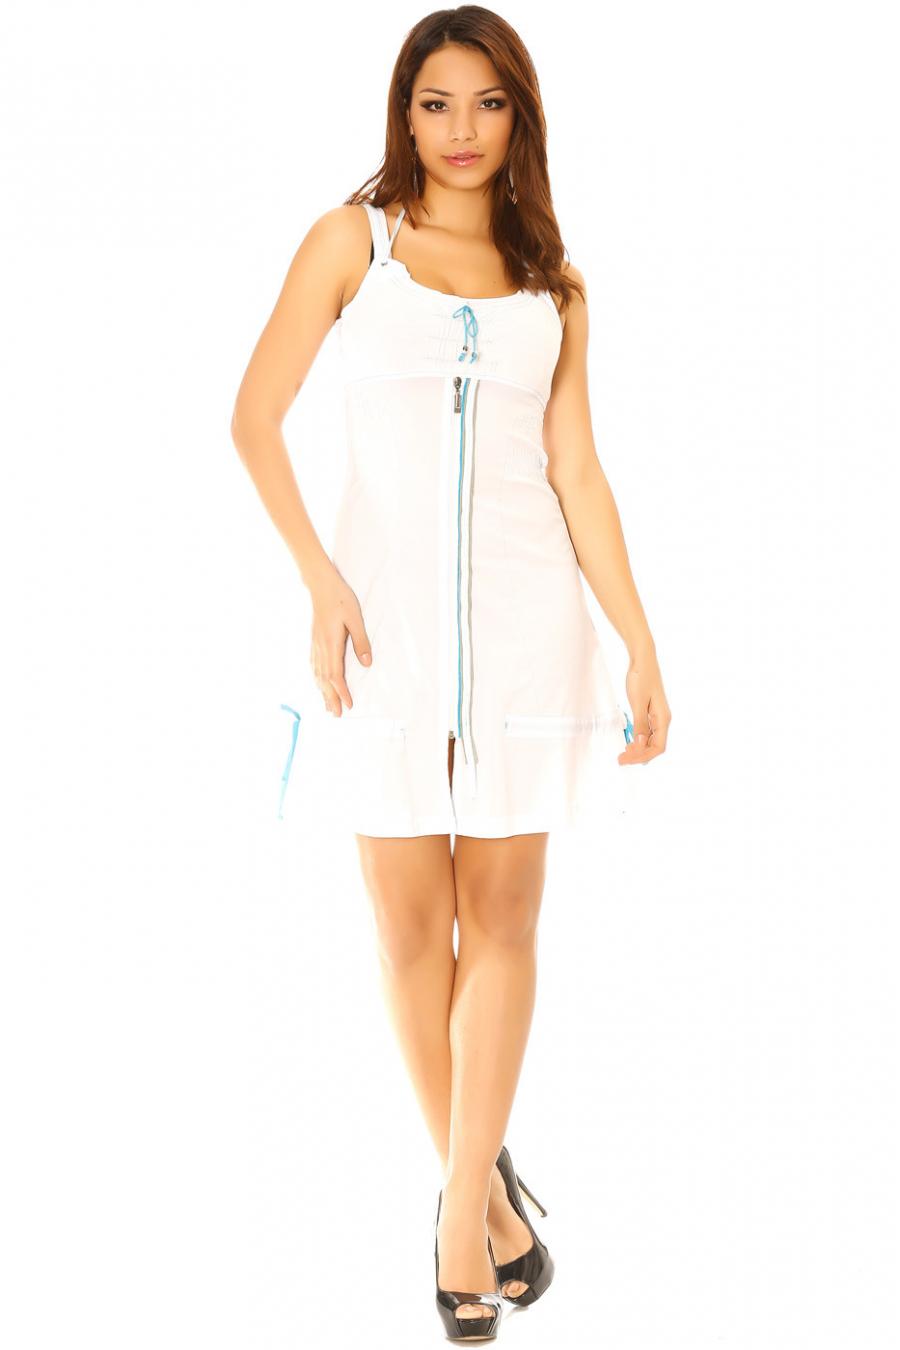 Dress with white straps and turquoise blue zipper, 923